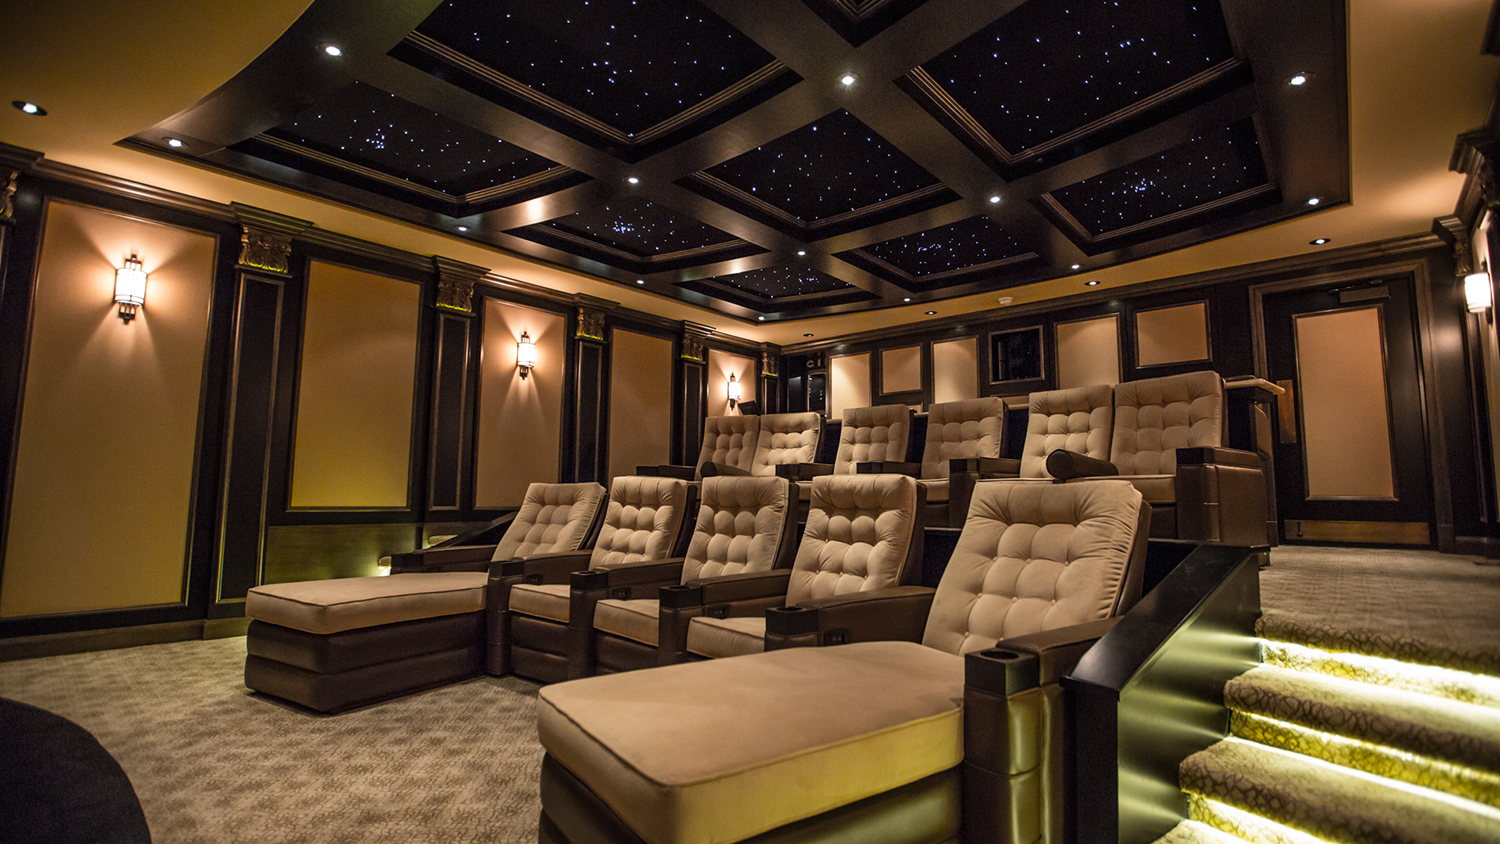 Theatre room in amazing home